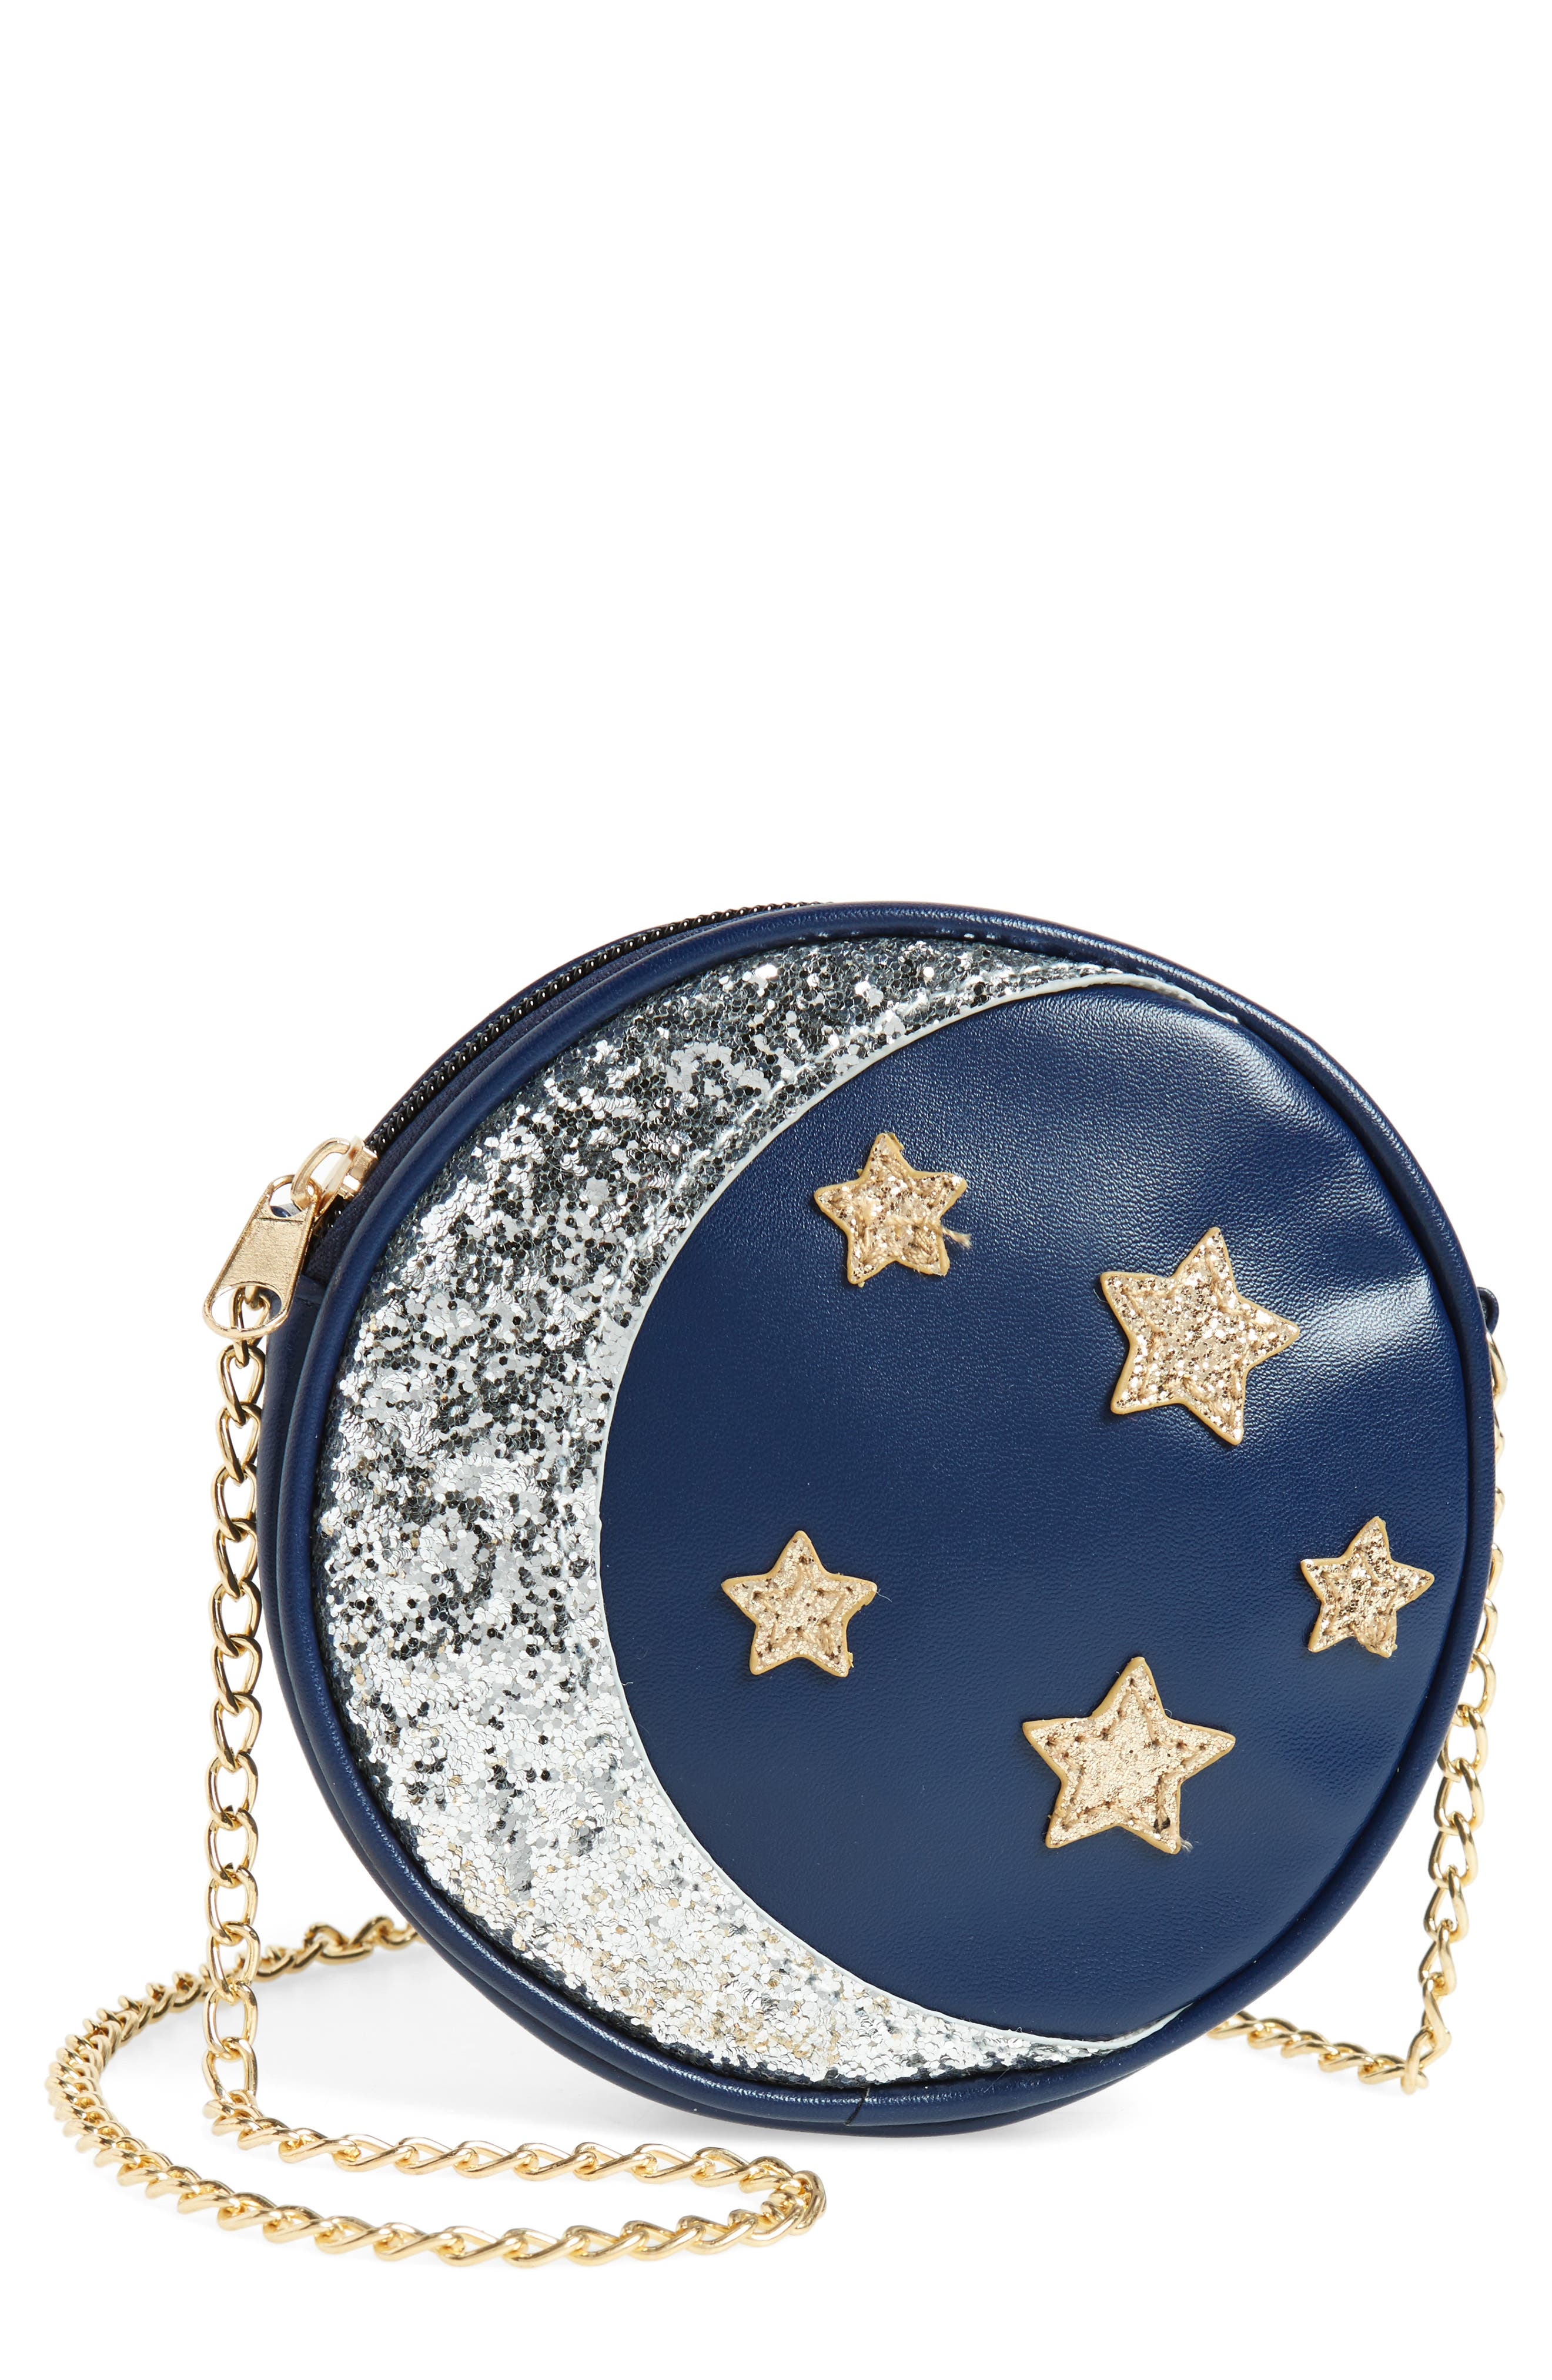 Capelli of New York Sequin Stars & Moon Bag (Kids)